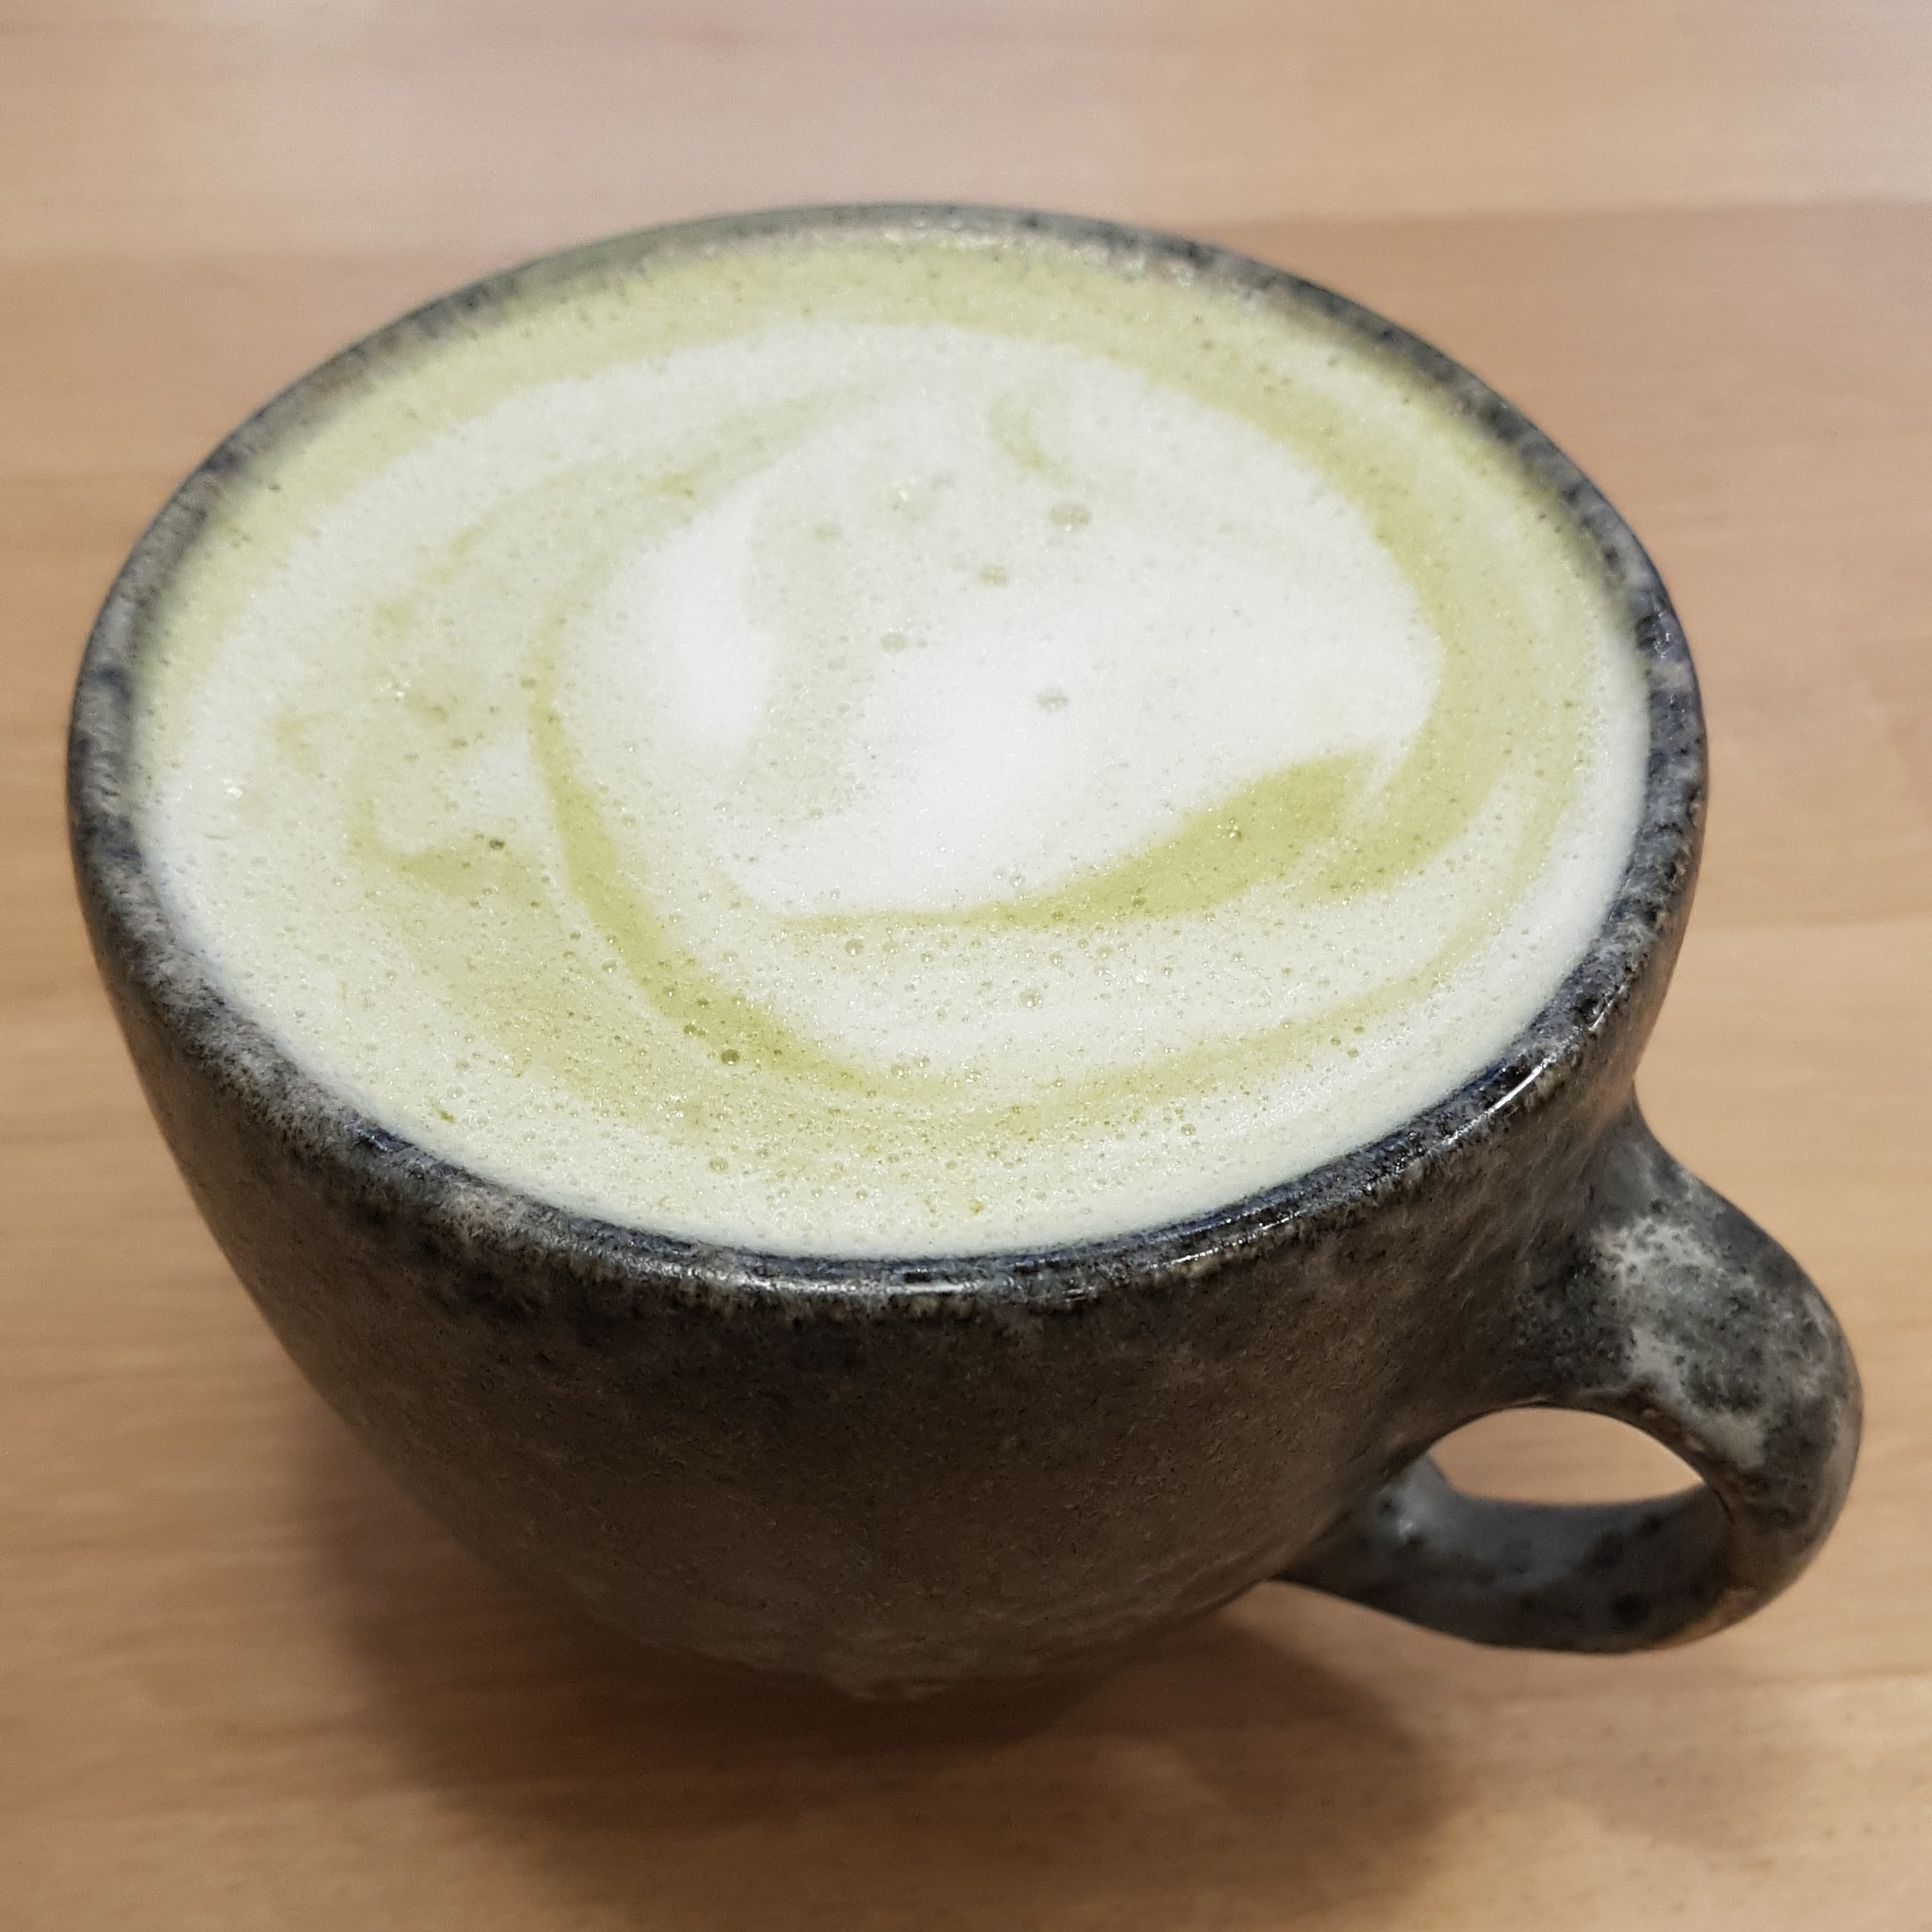 42Raw - Copenhague - Matcha latte